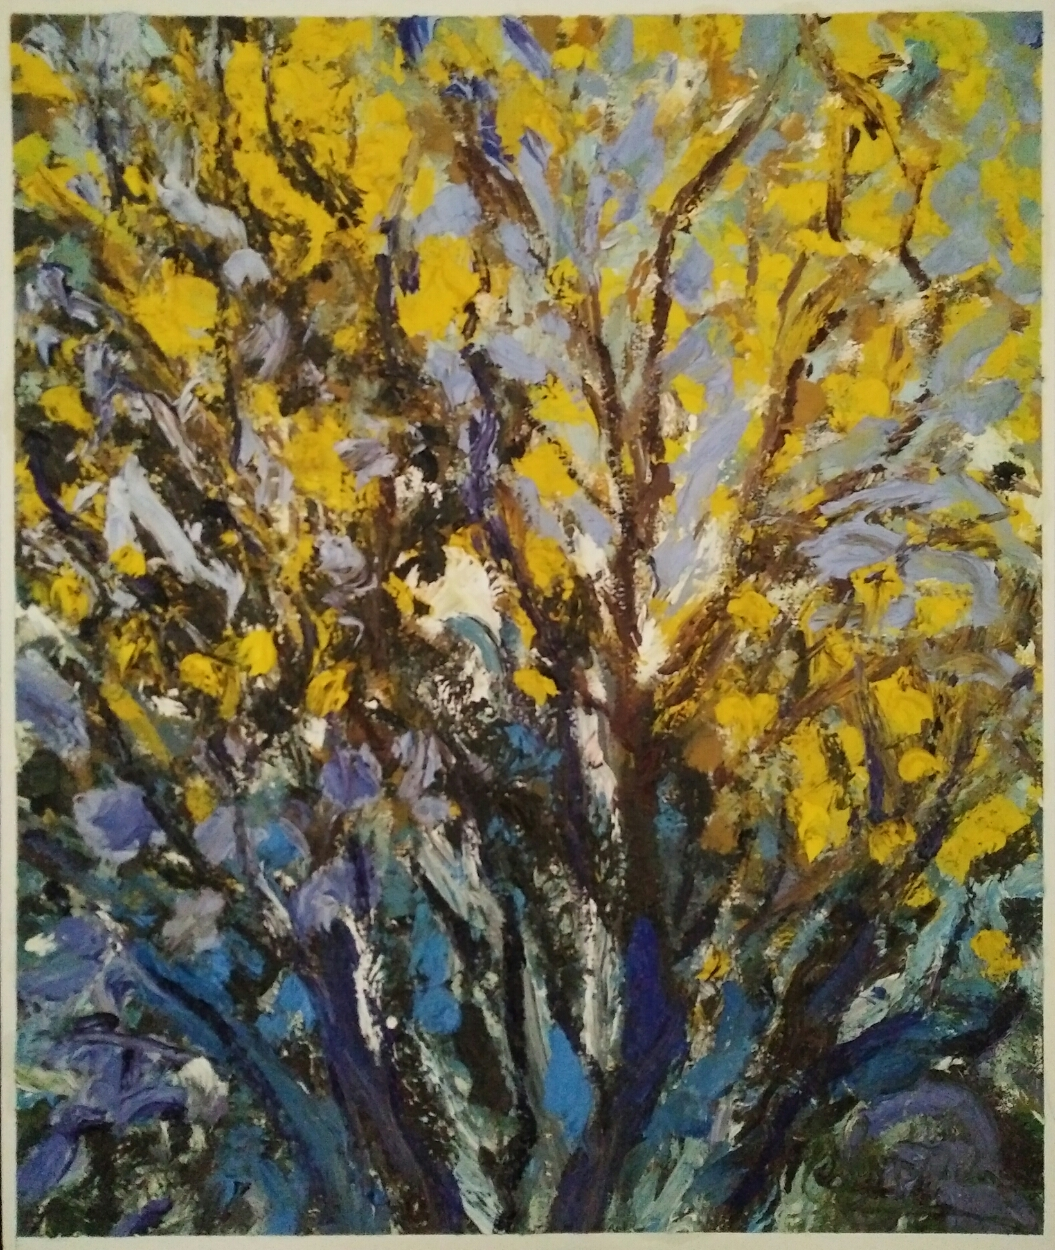 """Arbres jaunes ombre bleue""/ Oil on canvas/ 63 cm X 52 cm"